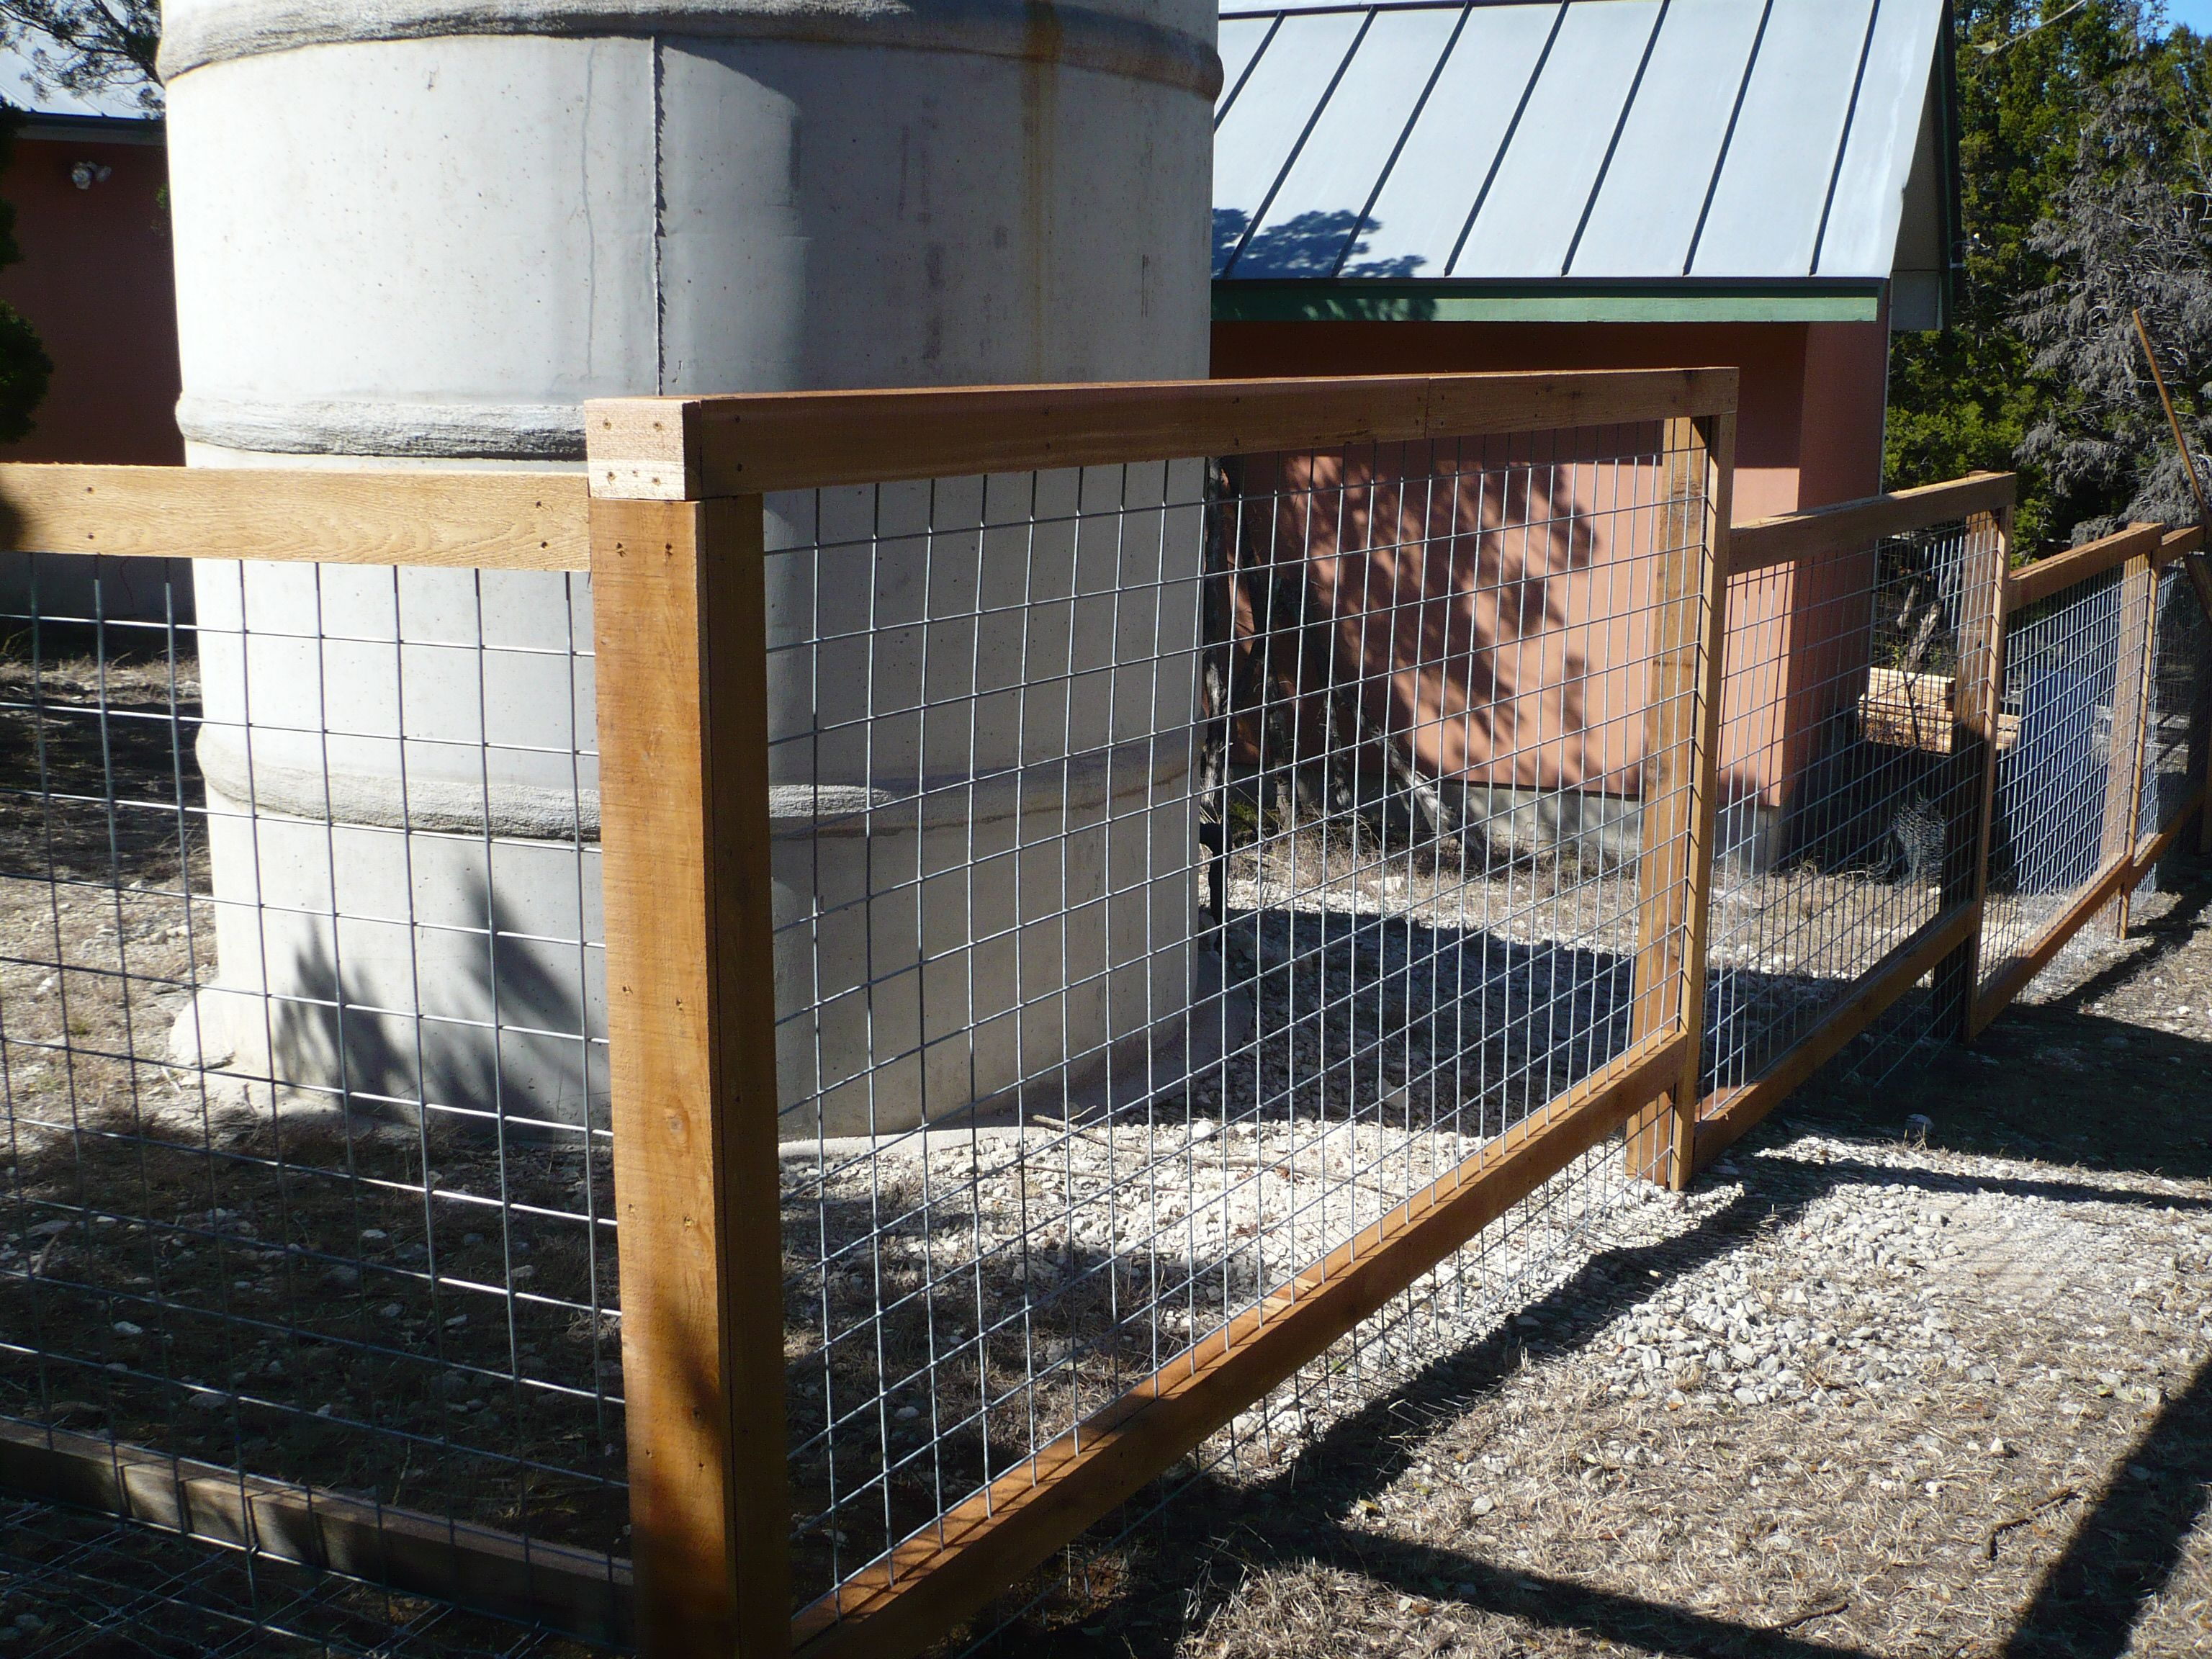 Woven Wire Fencing - Woven Wire Fence on the Farm | How does your ...